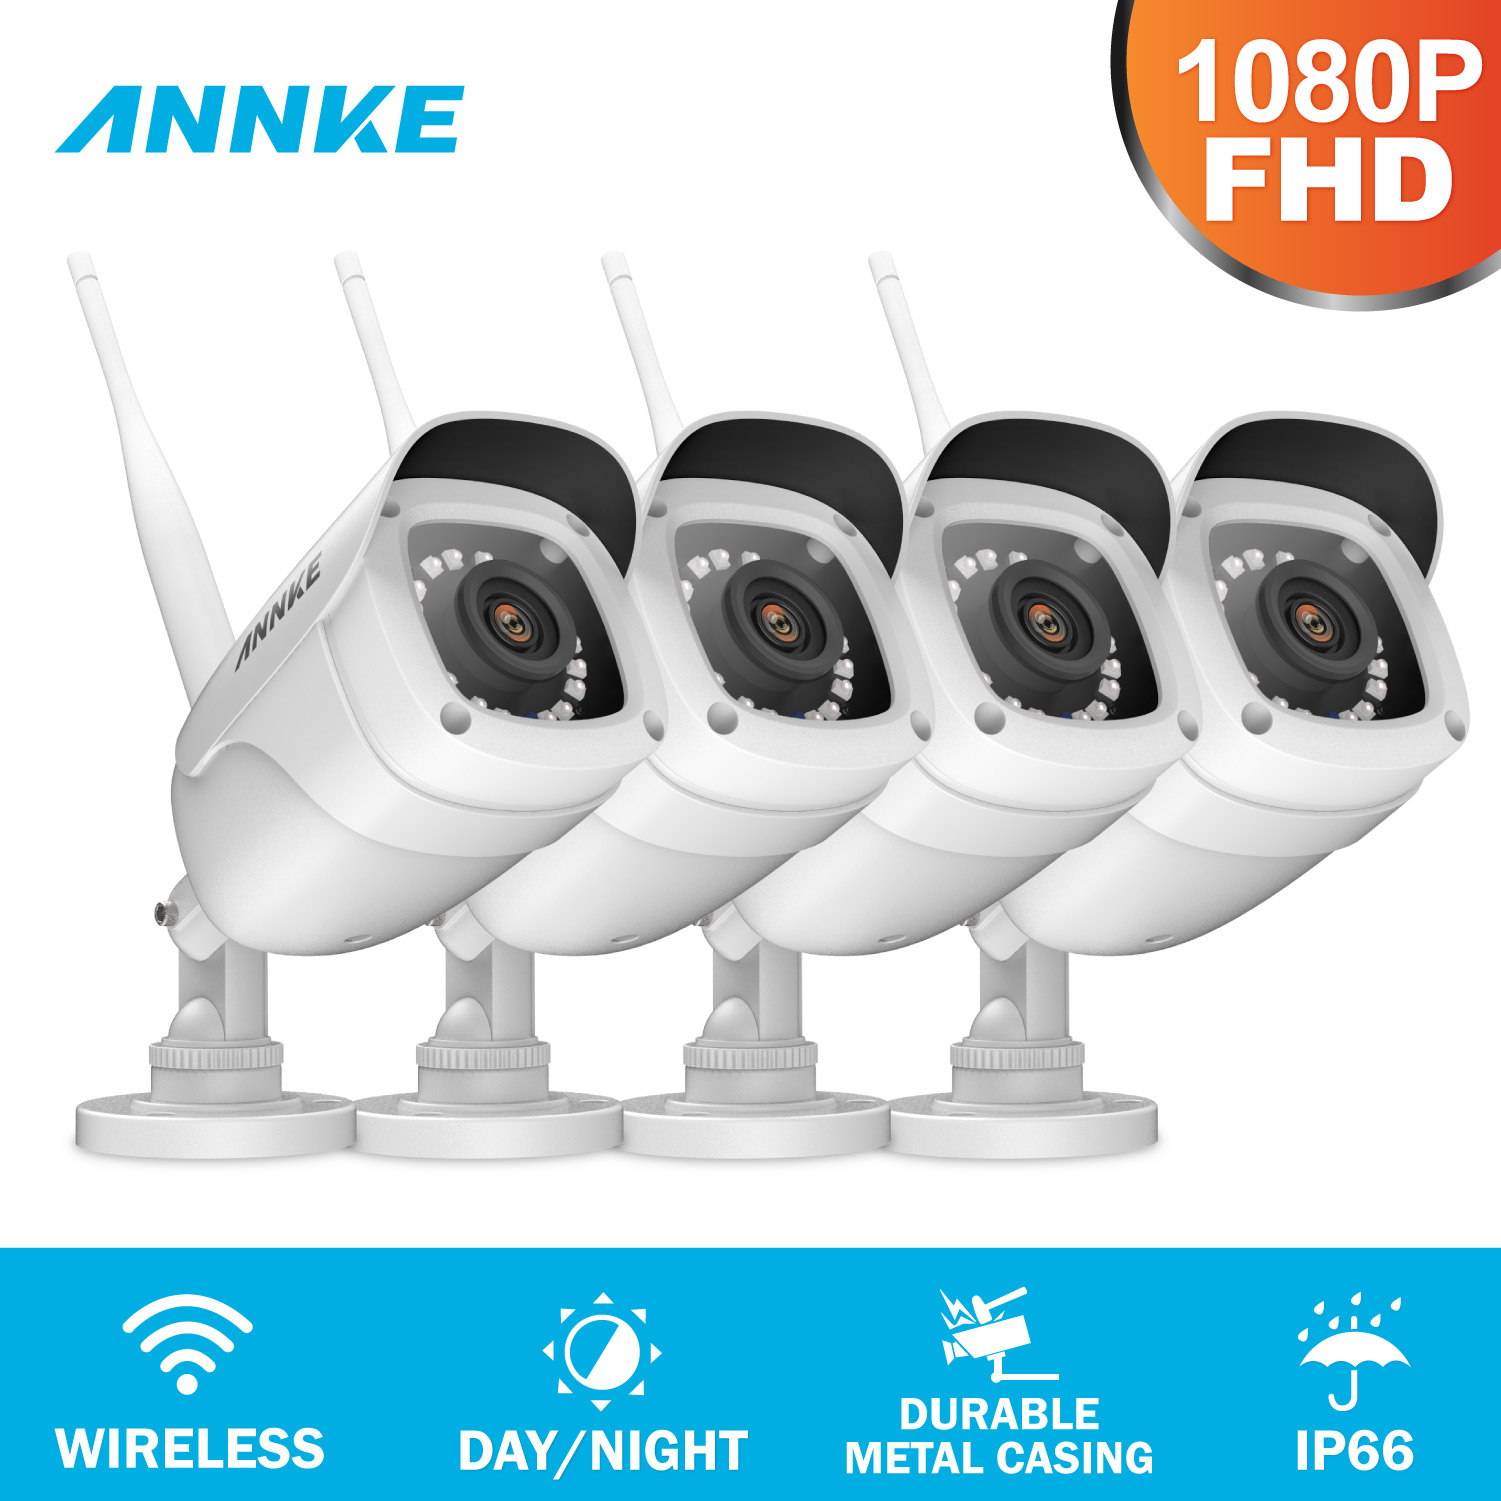 ANNKE FHD 1080P IP WiFi Wireless Video Camera Surveillance System Bullet Weatherproof Camera 100ft Night Vision With Smart IRANNKE FHD 1080P IP WiFi Wireless Video Camera Surveillance System Bullet Weatherproof Camera 100ft Night Vision With Smart IR